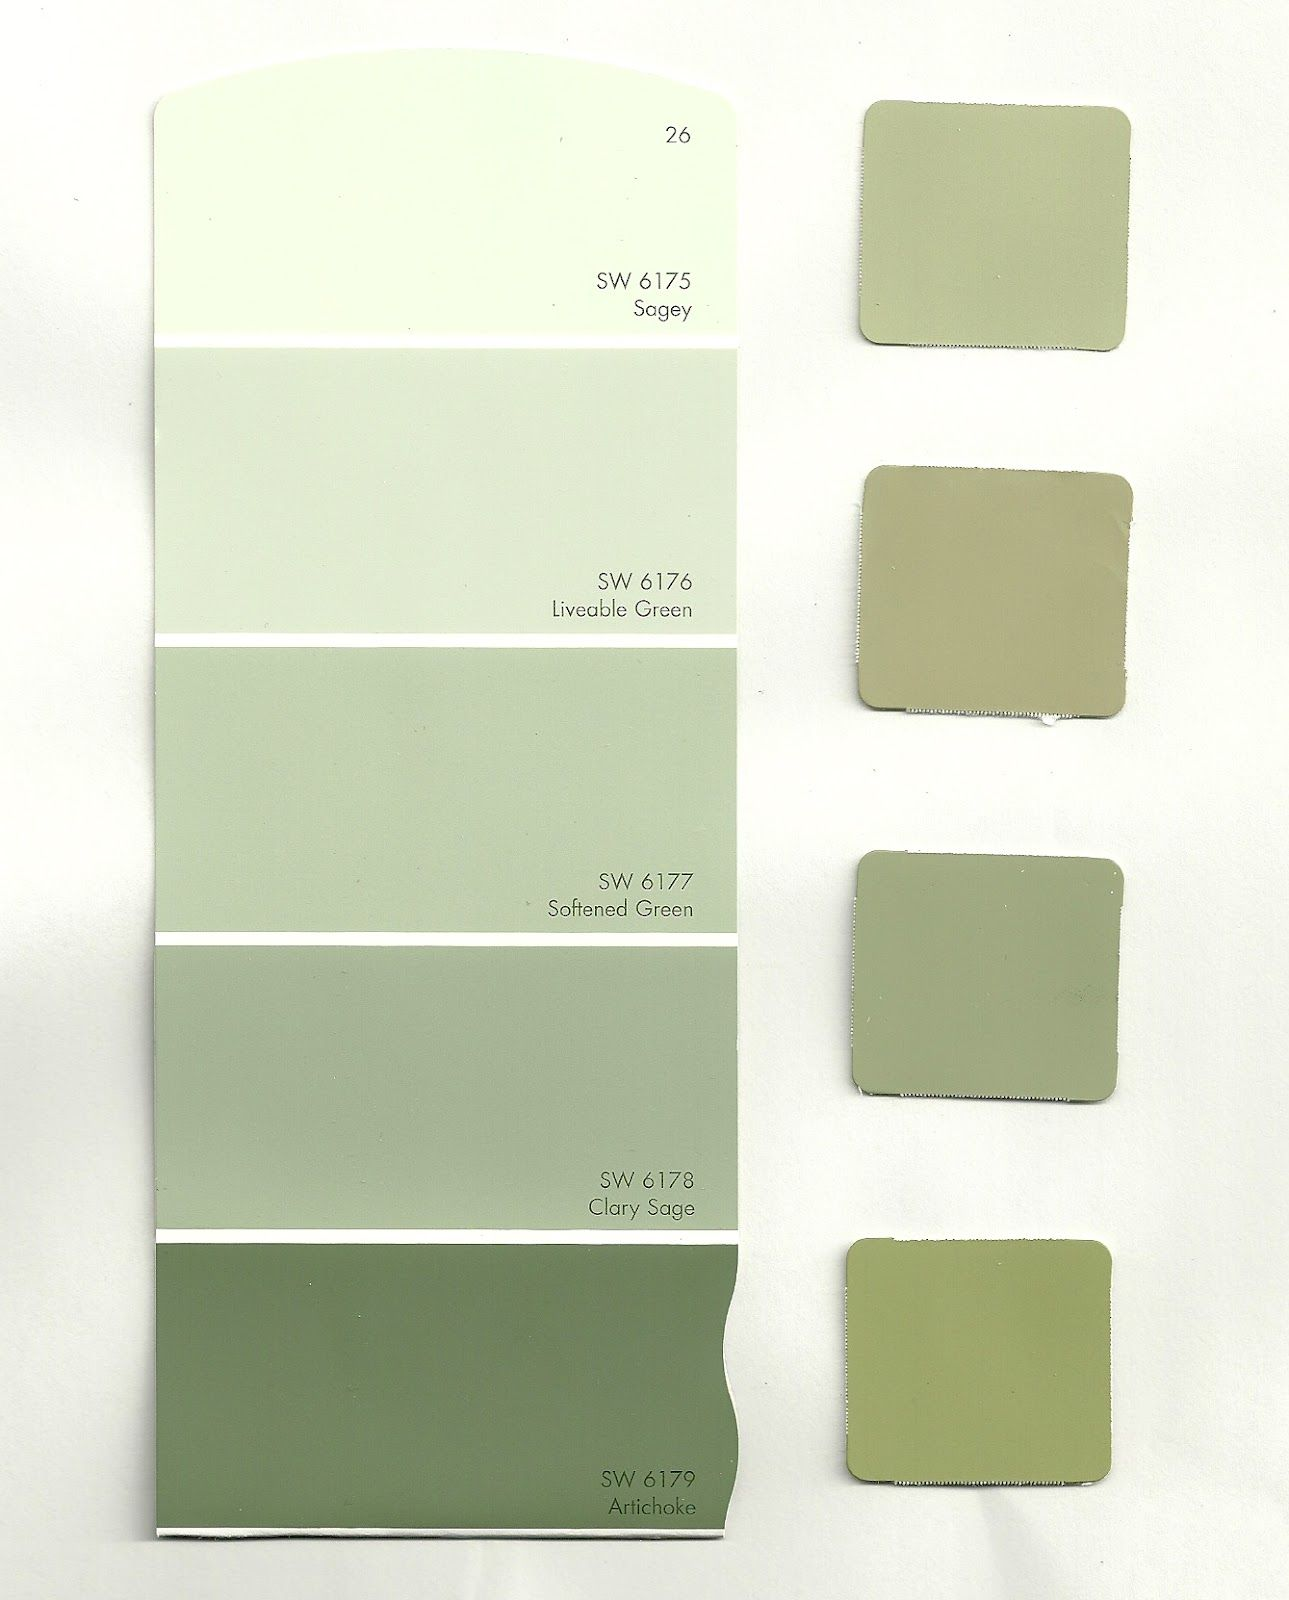 Sherwin Williams Green Paint Colors We Are Looking For A Middle Shade Of Olive Or Sage To Compliment The